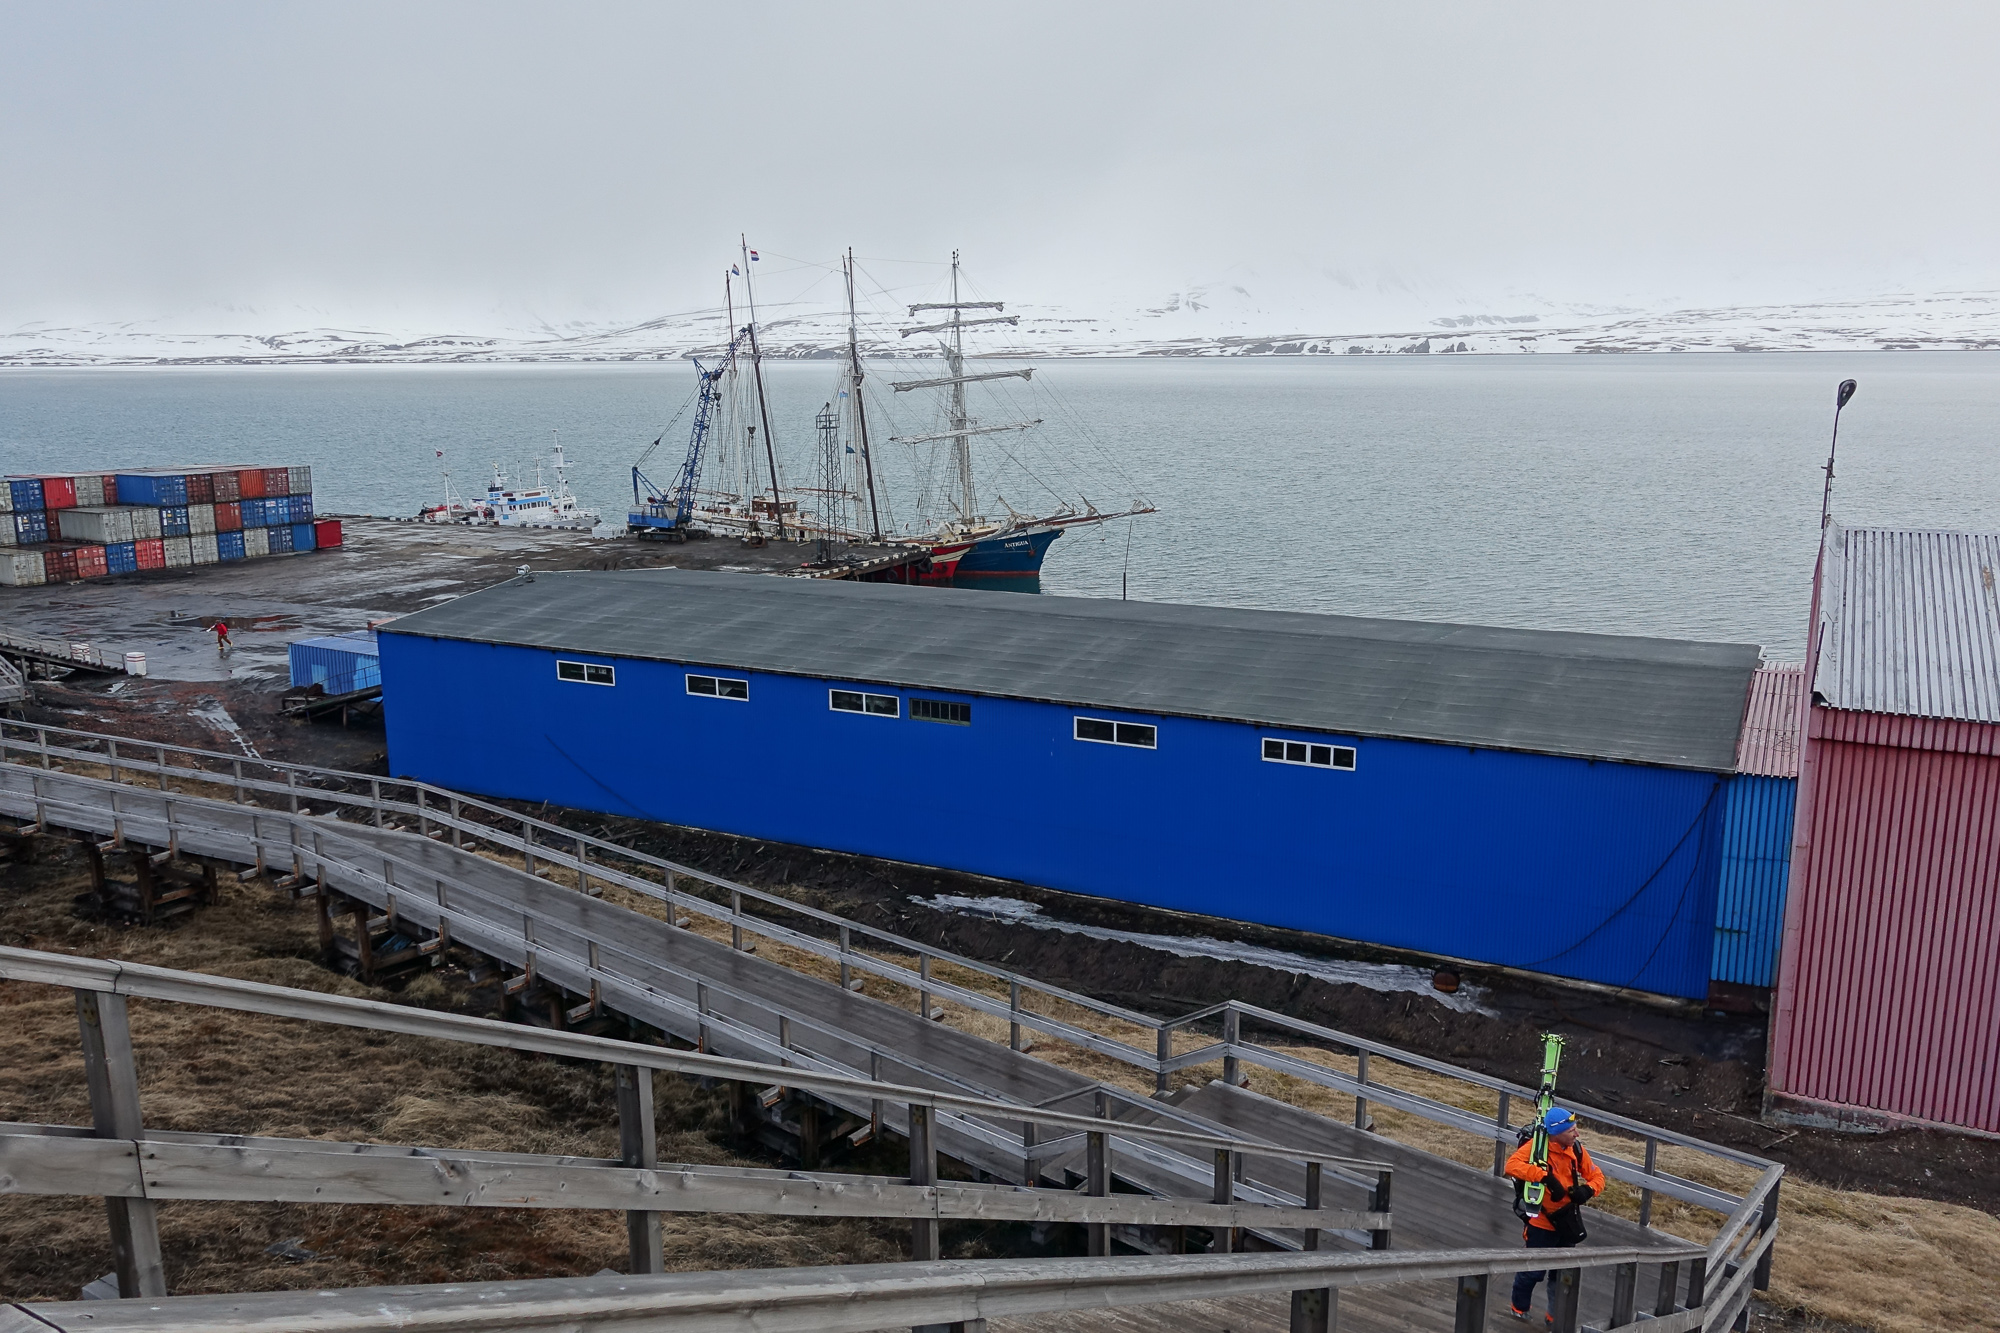 The 110-foot Noorderlicht, docked in the harbor at a Russian coal-mining outpost